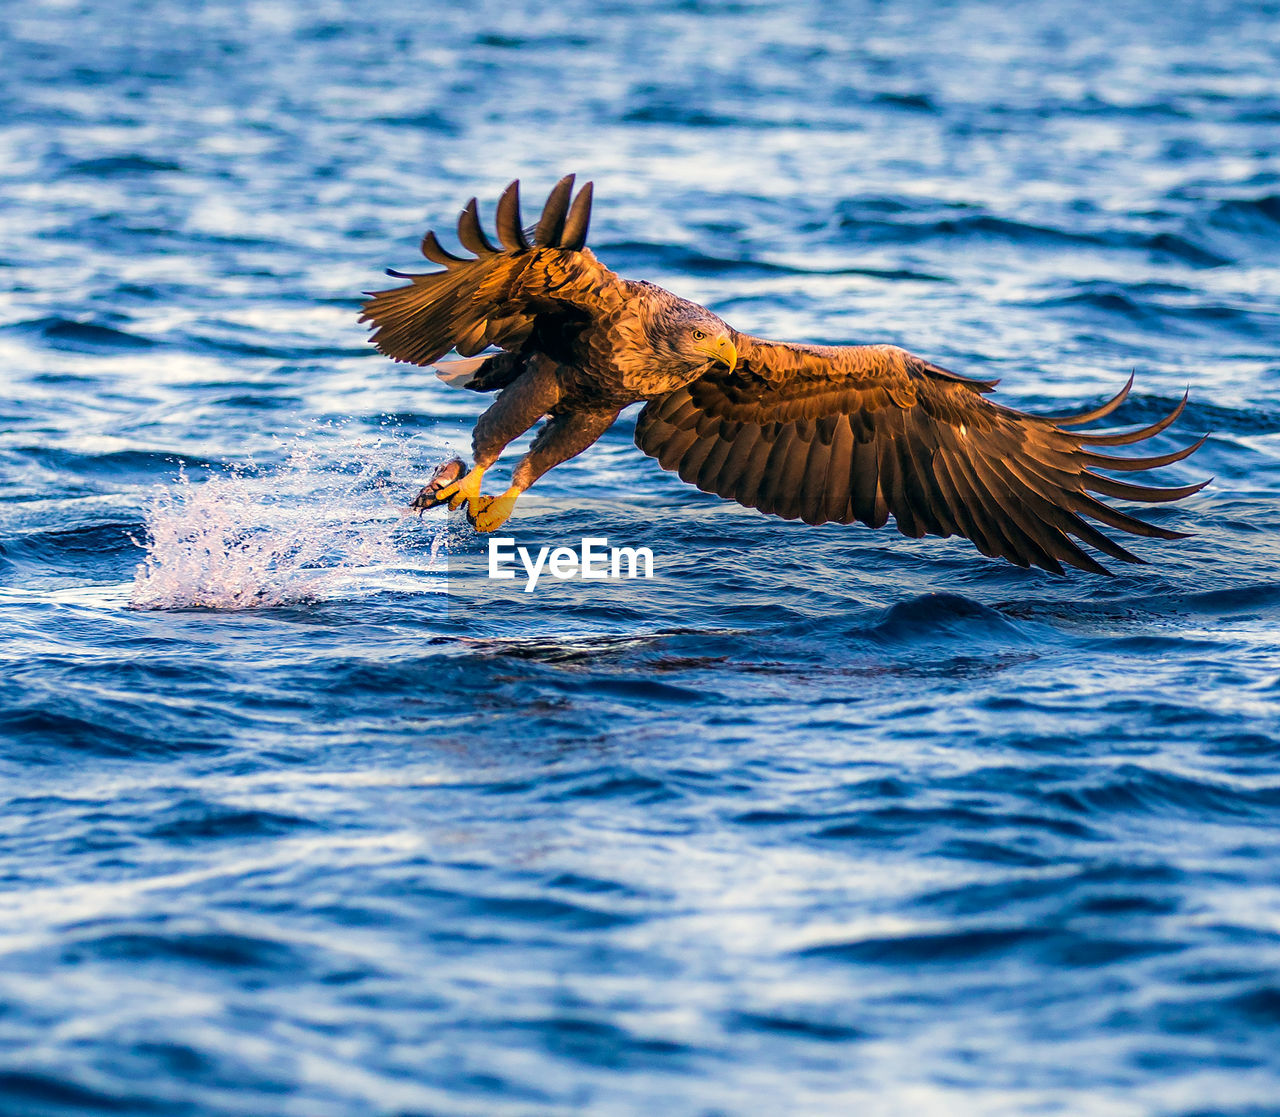 water, animal, animal themes, one animal, waterfront, sea, animal wildlife, vertebrate, animals in the wild, day, nature, flying, no people, bird, outdoors, motion, spread wings, fish, beauty in nature, marine